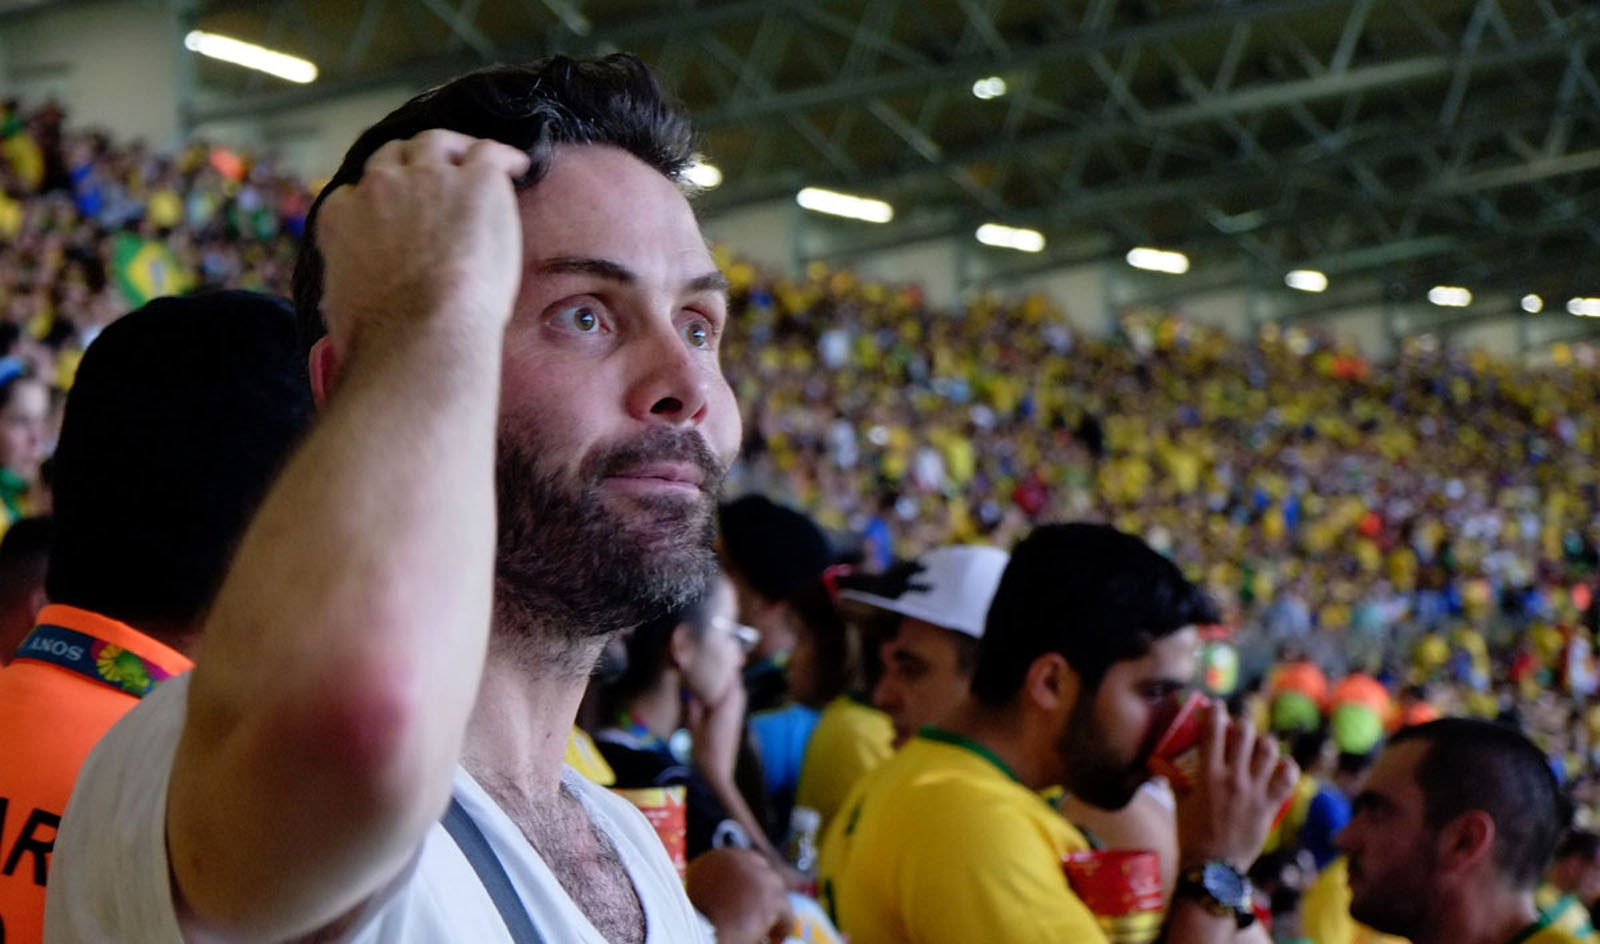 An unidentified Brazilian fan scratches his head in disbelieve of what is happening on the field below.